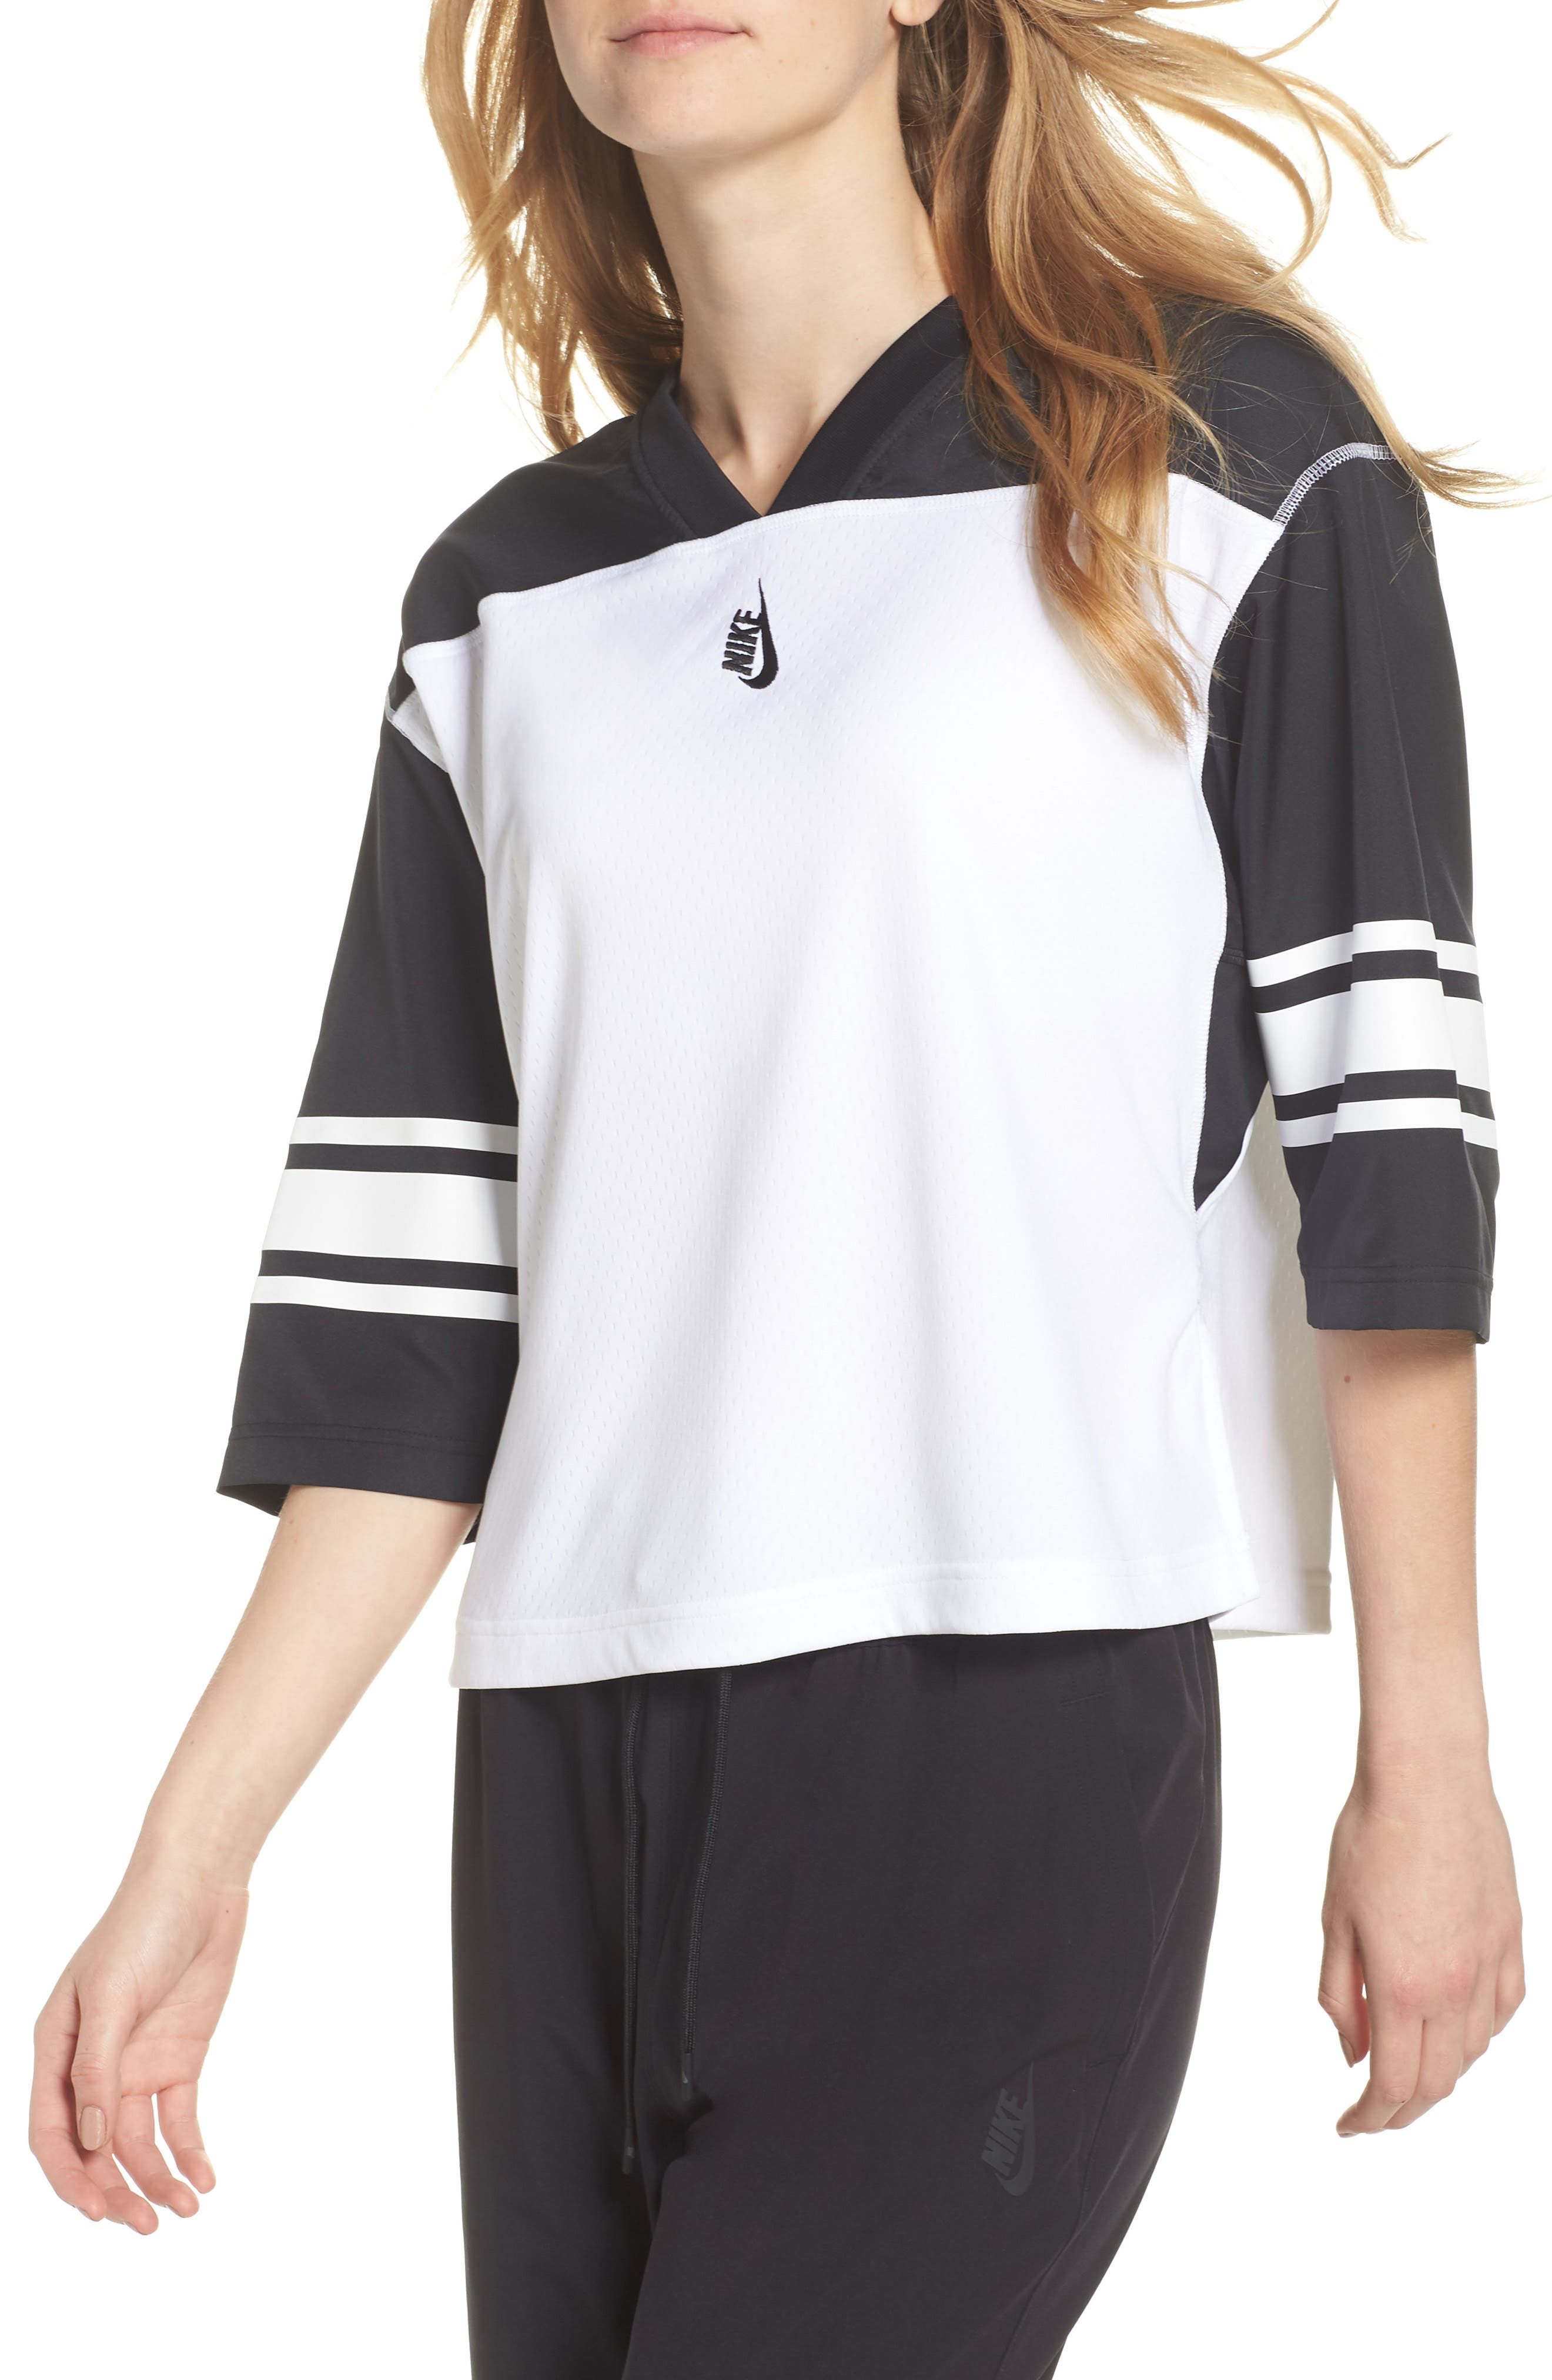 LAB COLLECTION FOOTBALL TOP